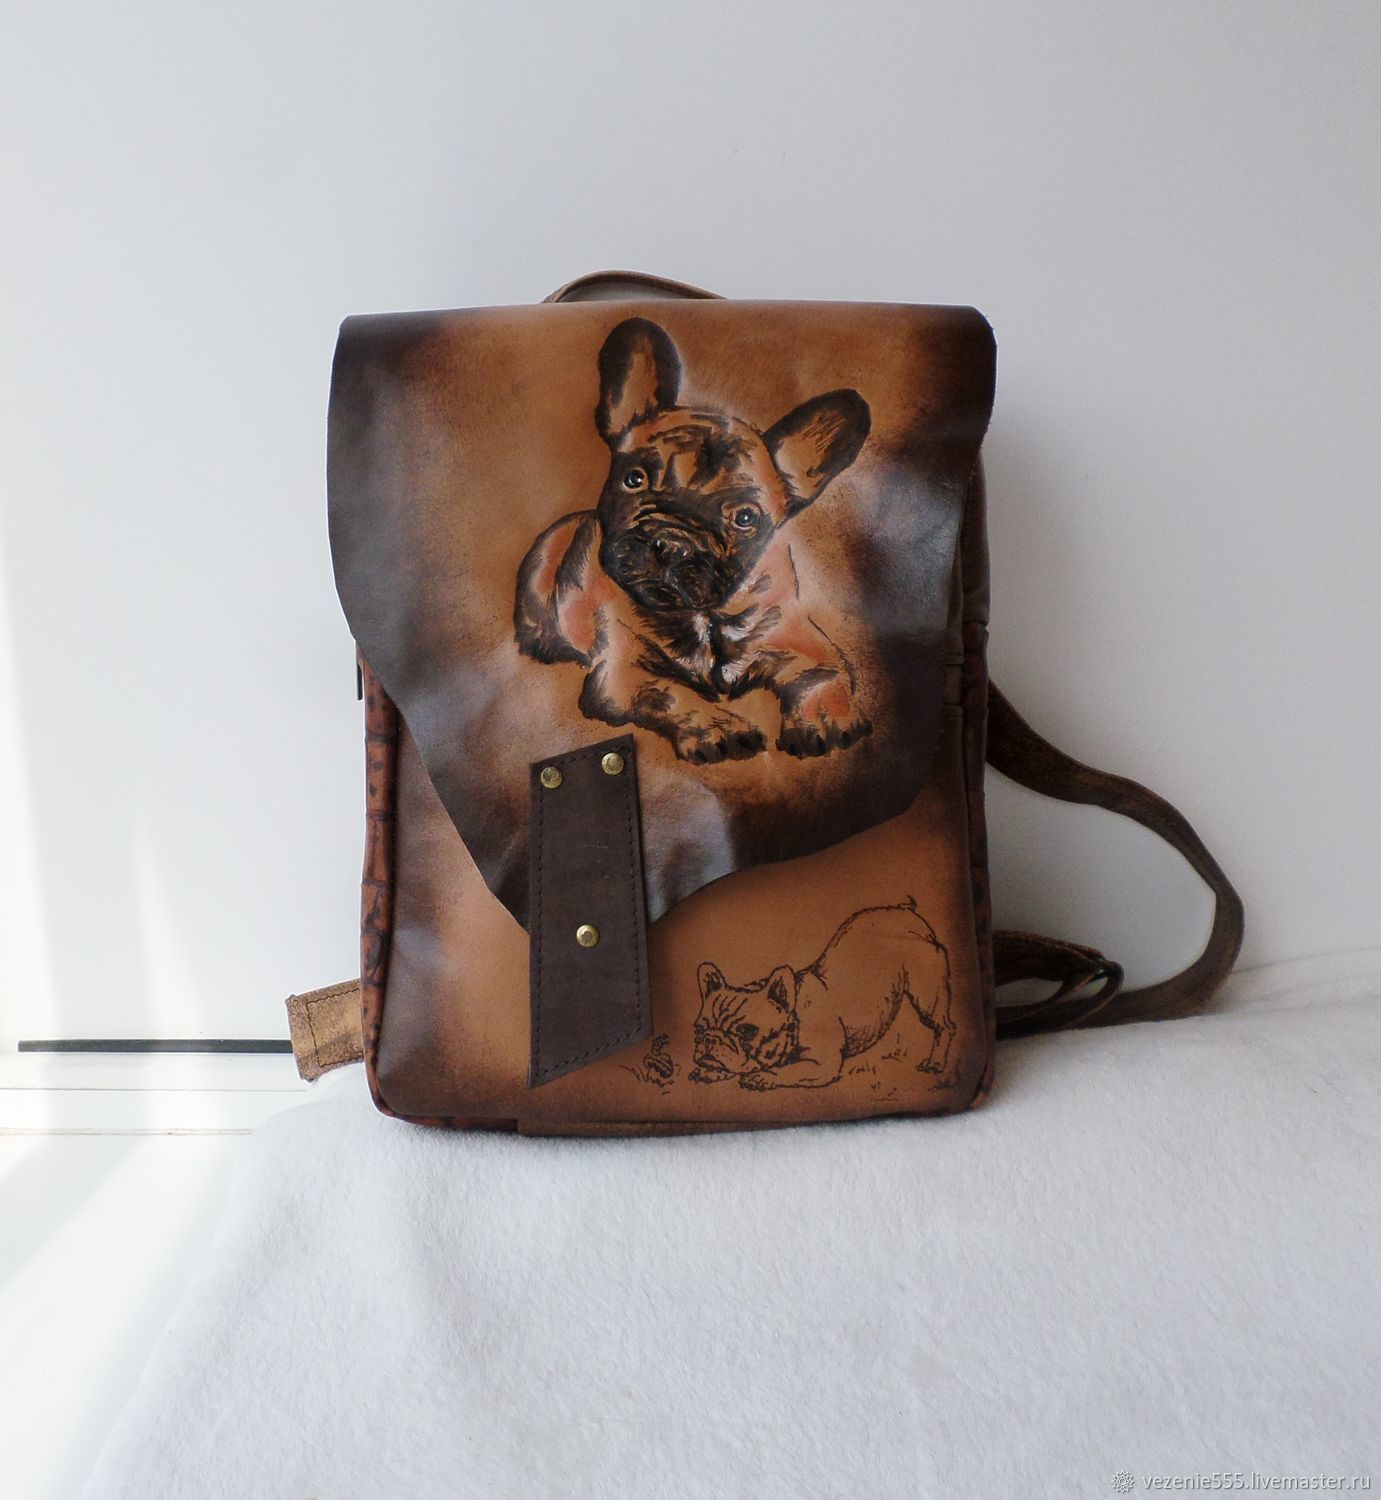 Women's leather backpack with engraving and painting, Backpacks, Noginsk,  Фото №1